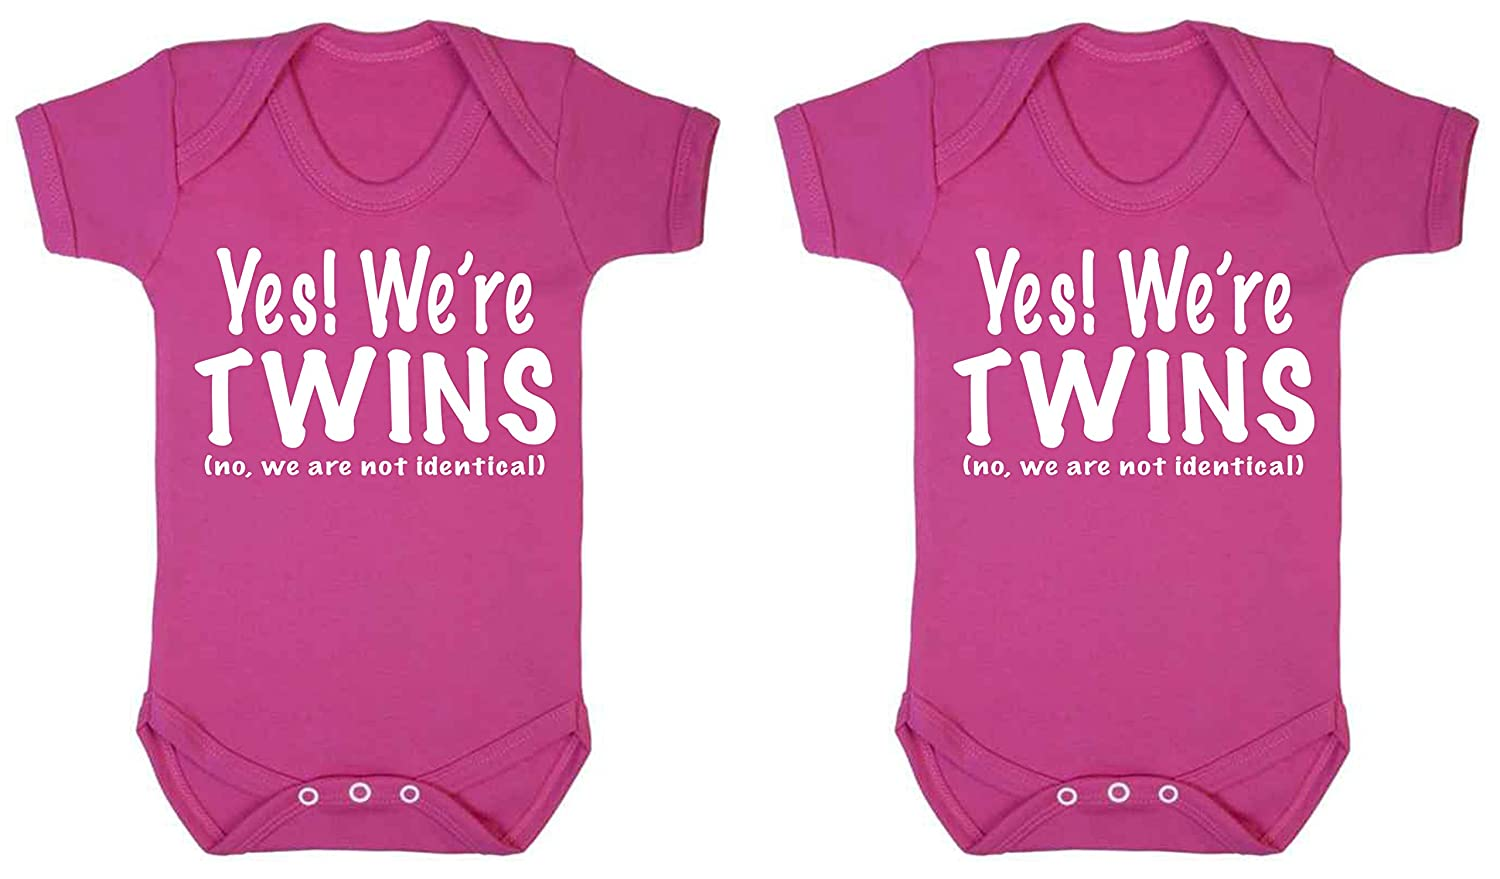 "taglia unica Set di due pagliaccetti per bambino con la scritta /""Yes we/'re twins lingua italiana non garantita we/'re not identical/"" no"